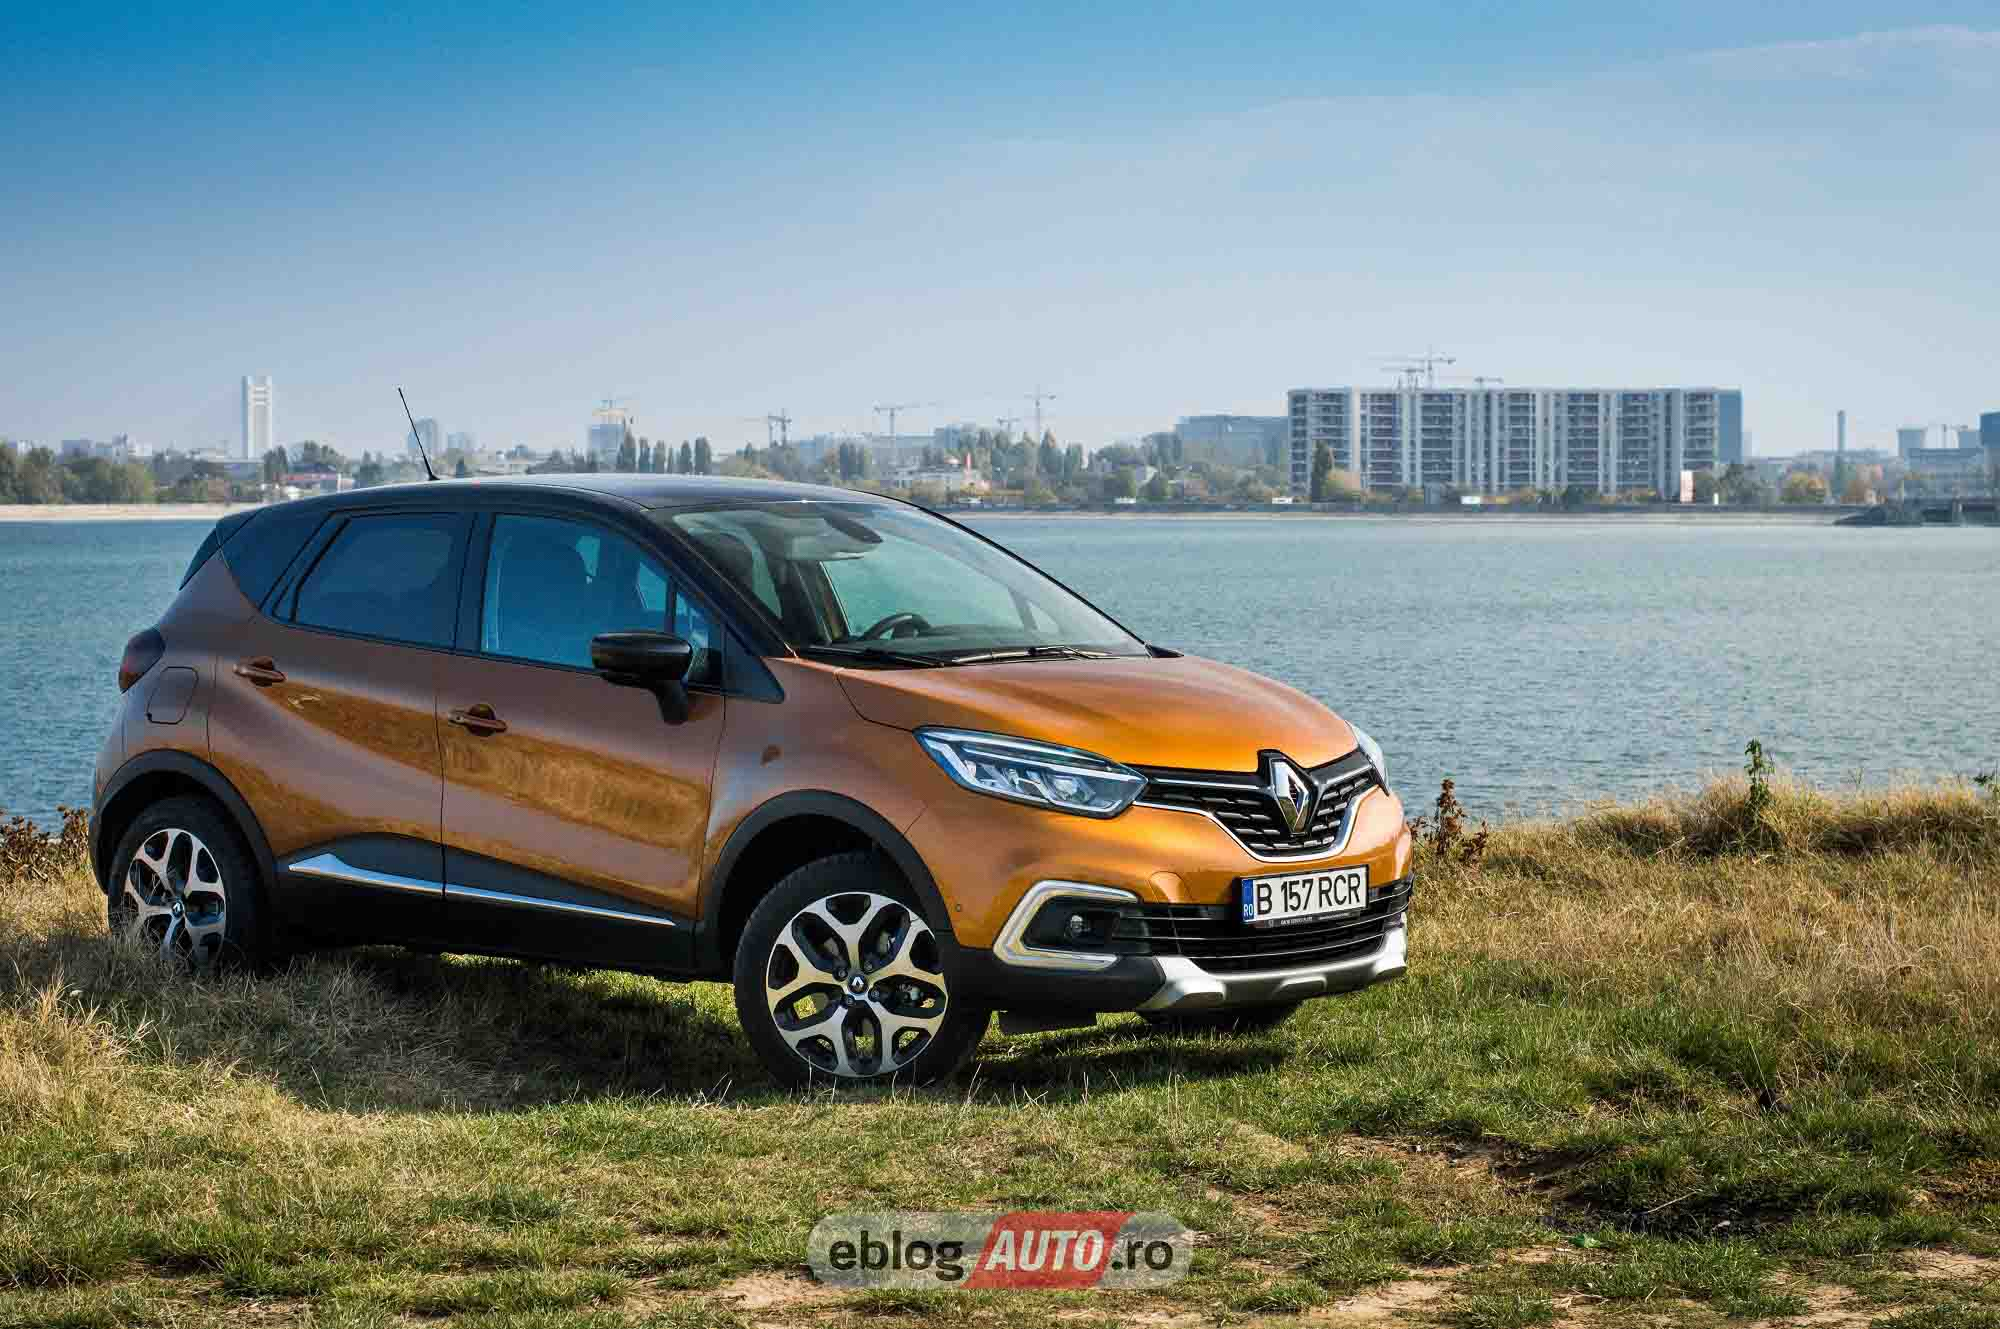 Test Drive Renault Captur 1.2 EDC XMOD facelift 2018 [VIDEO REVIEW]